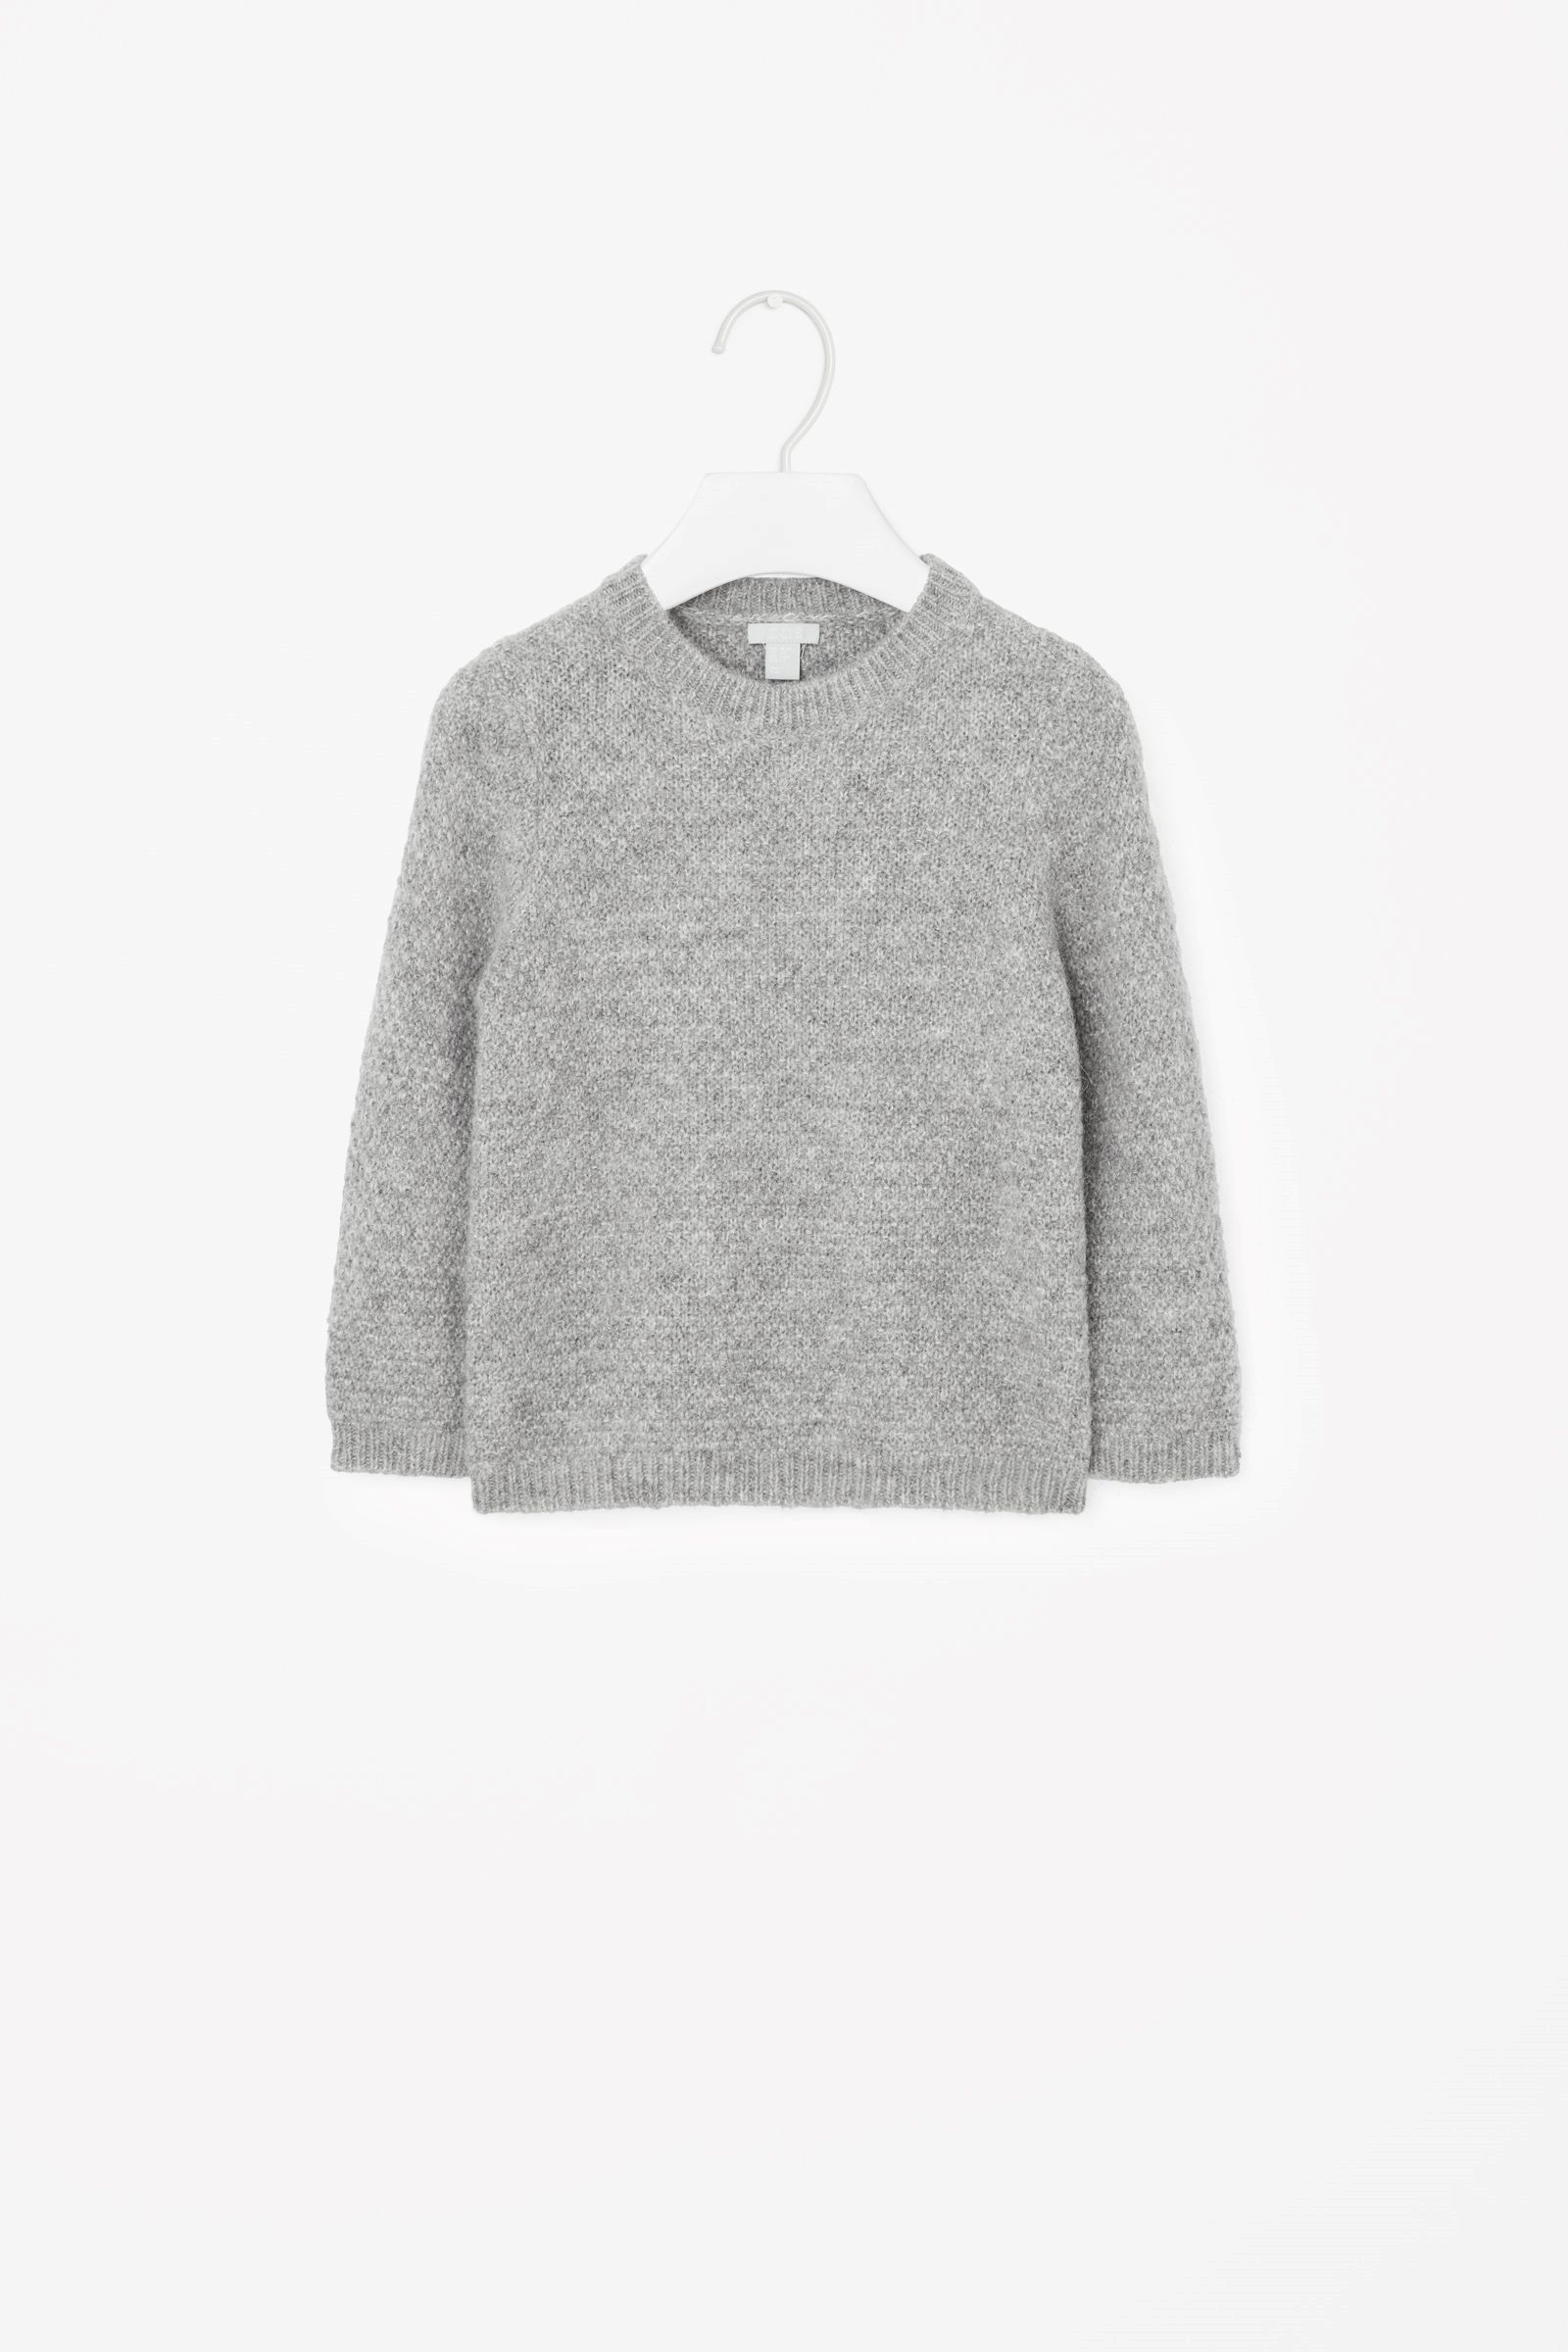 25f54e12912f COS image 1 of Structured knit jumper in Grey   Petit   Men sweater ...